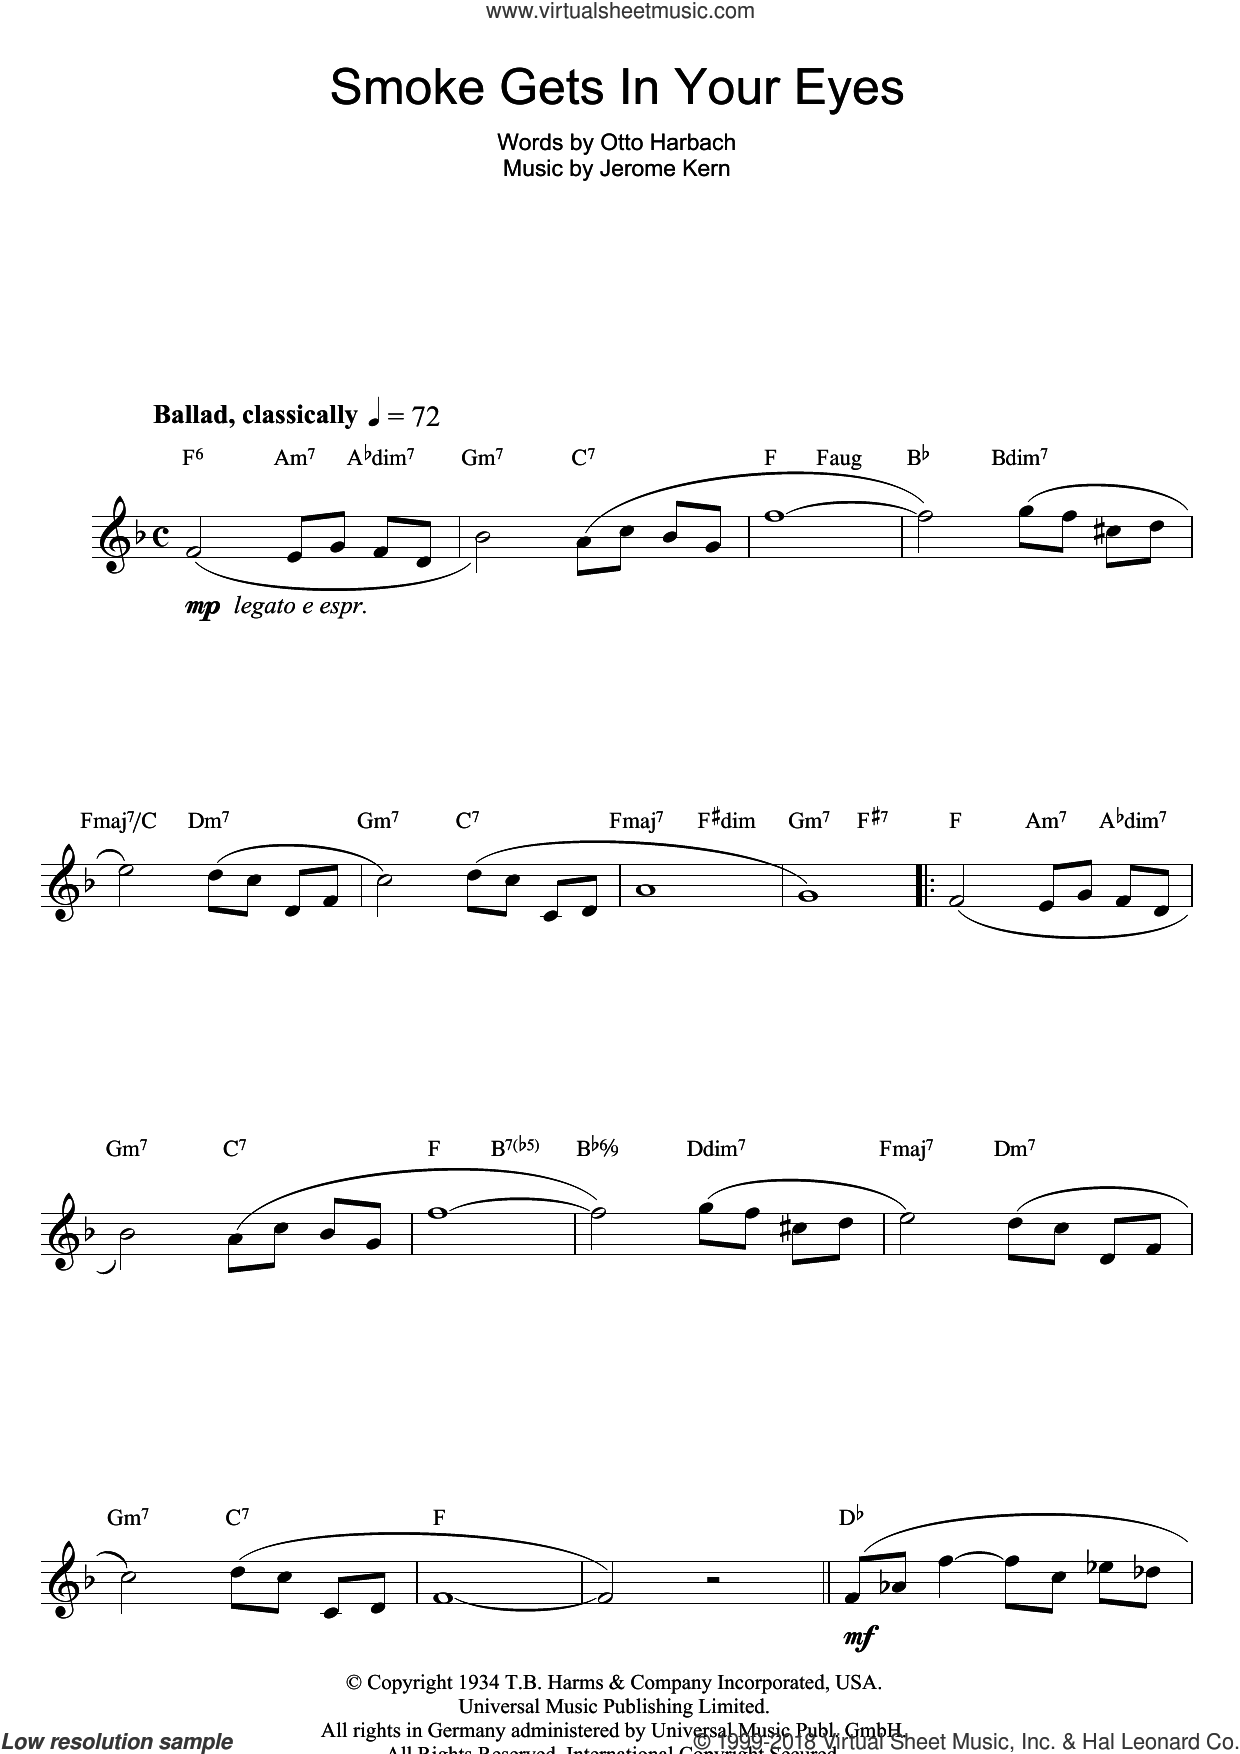 Smoke Gets In Your Eyes sheet music for flute solo by The Platters, Jerome Kern and Otto Harbach, intermediate skill level